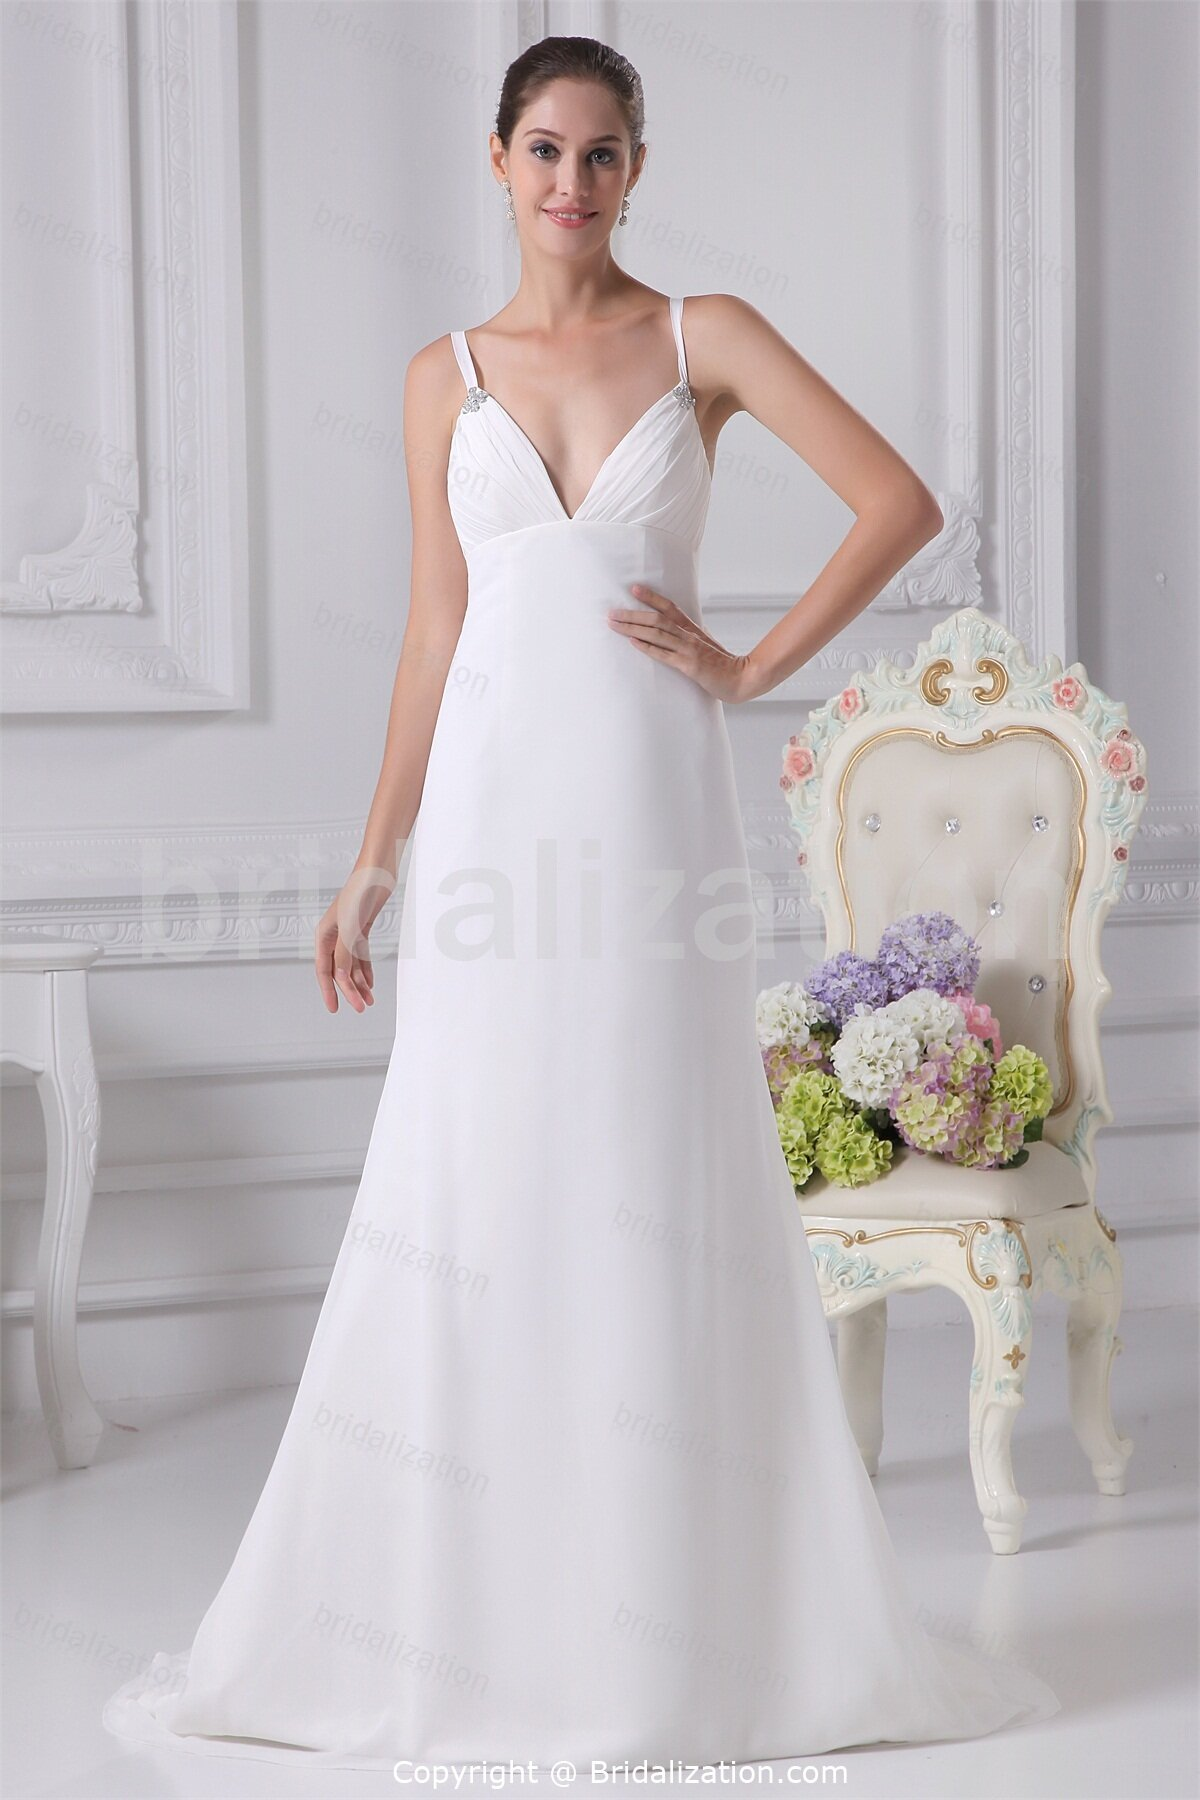 Wedding Dresses  With Straps : Don t shy away show those shoulders on your wedding day